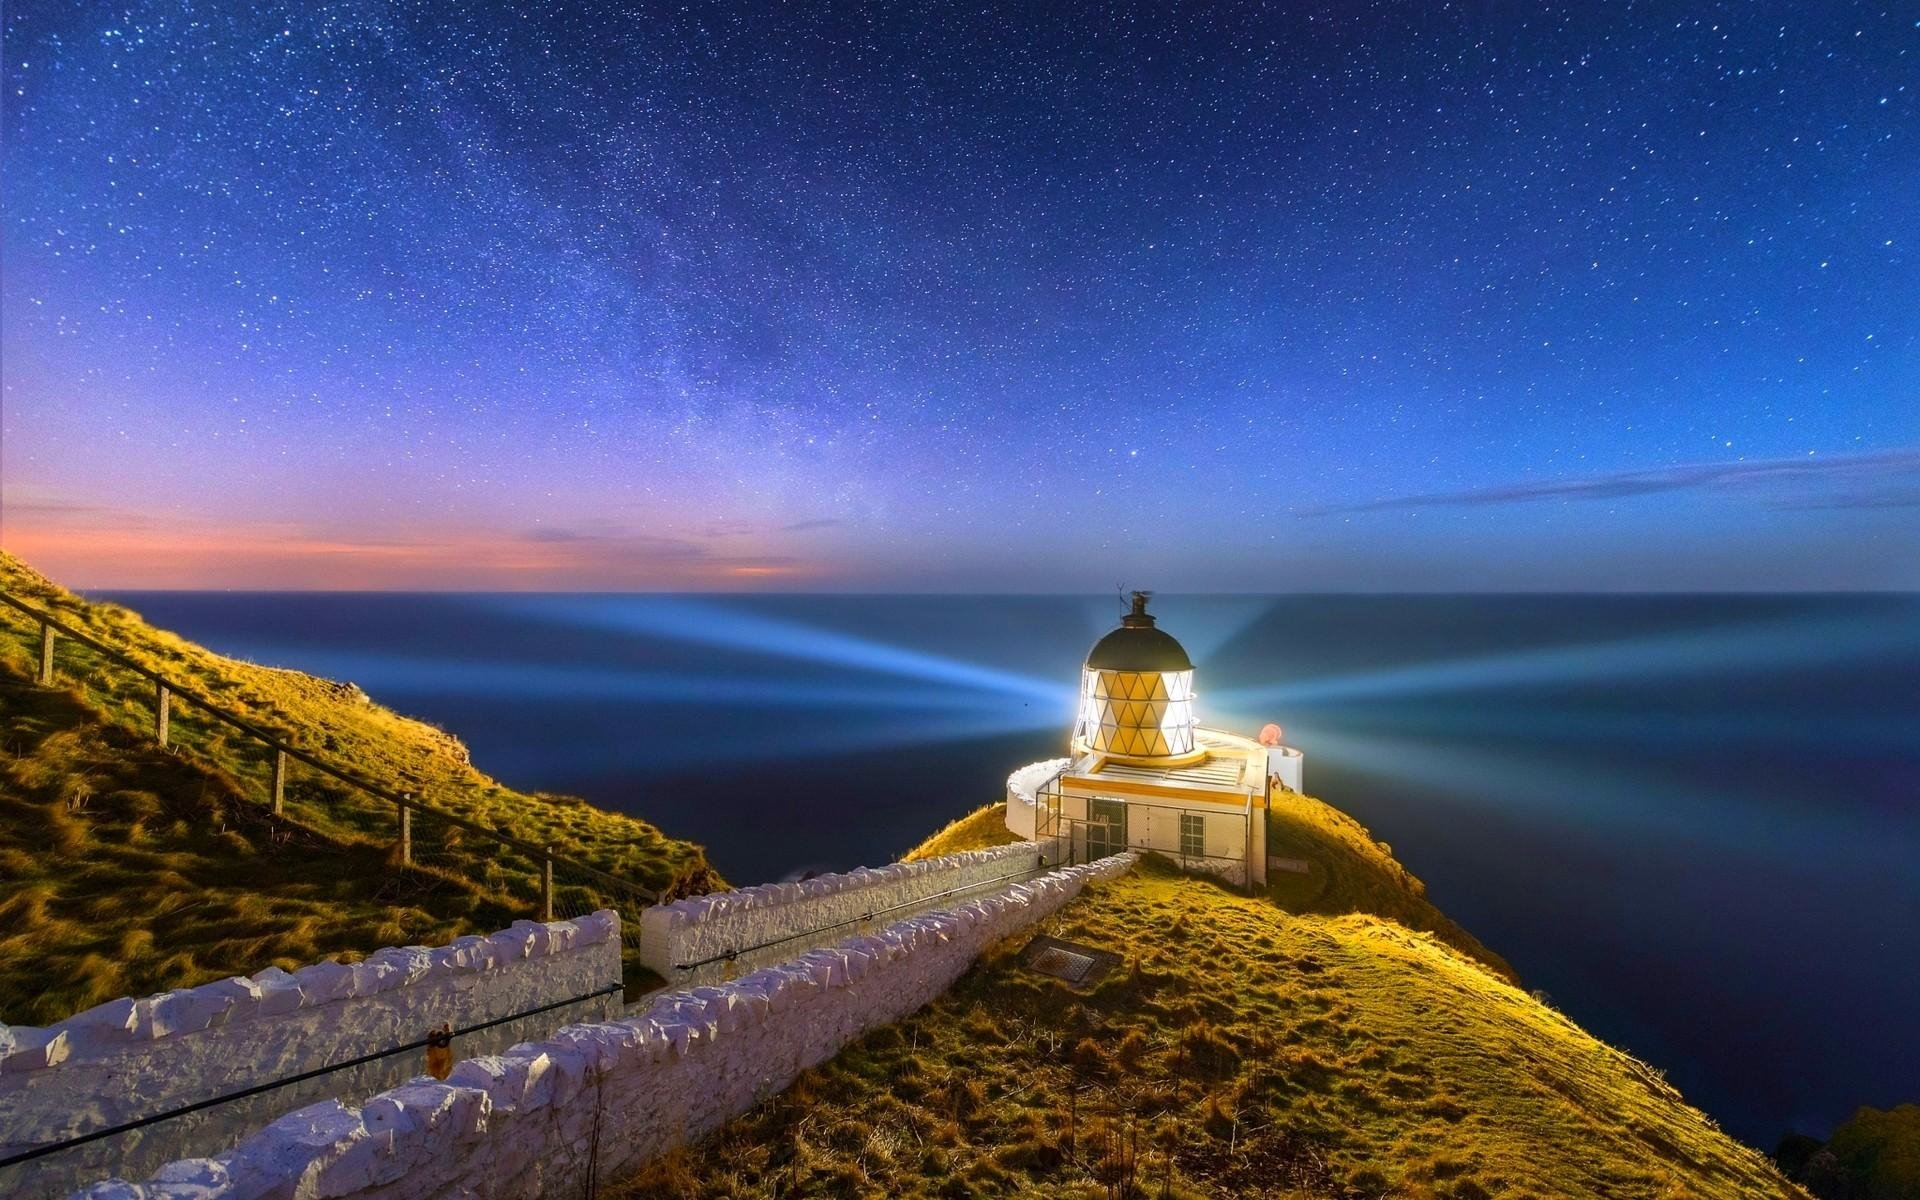 Lighthouse on Starry Night Image - ID: 296933 - Image Abyss